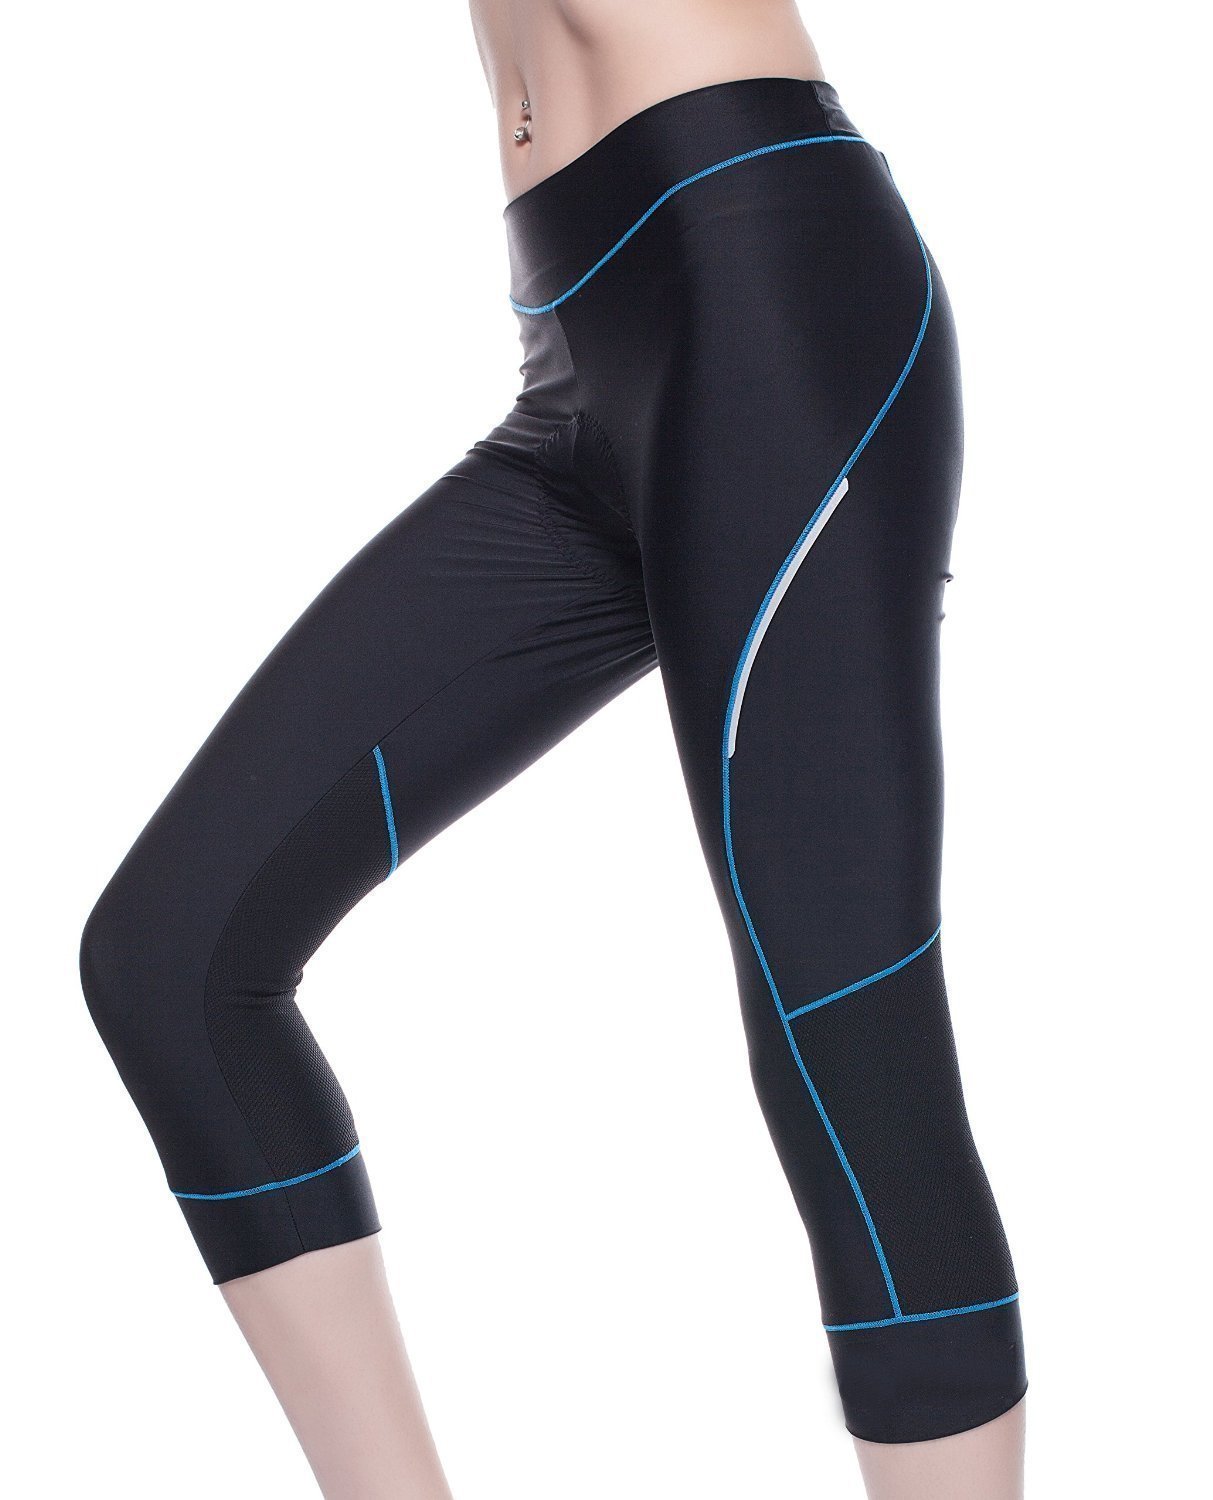 4ucycling Women Premium 3D Padded Breathable ? Cycling Tights